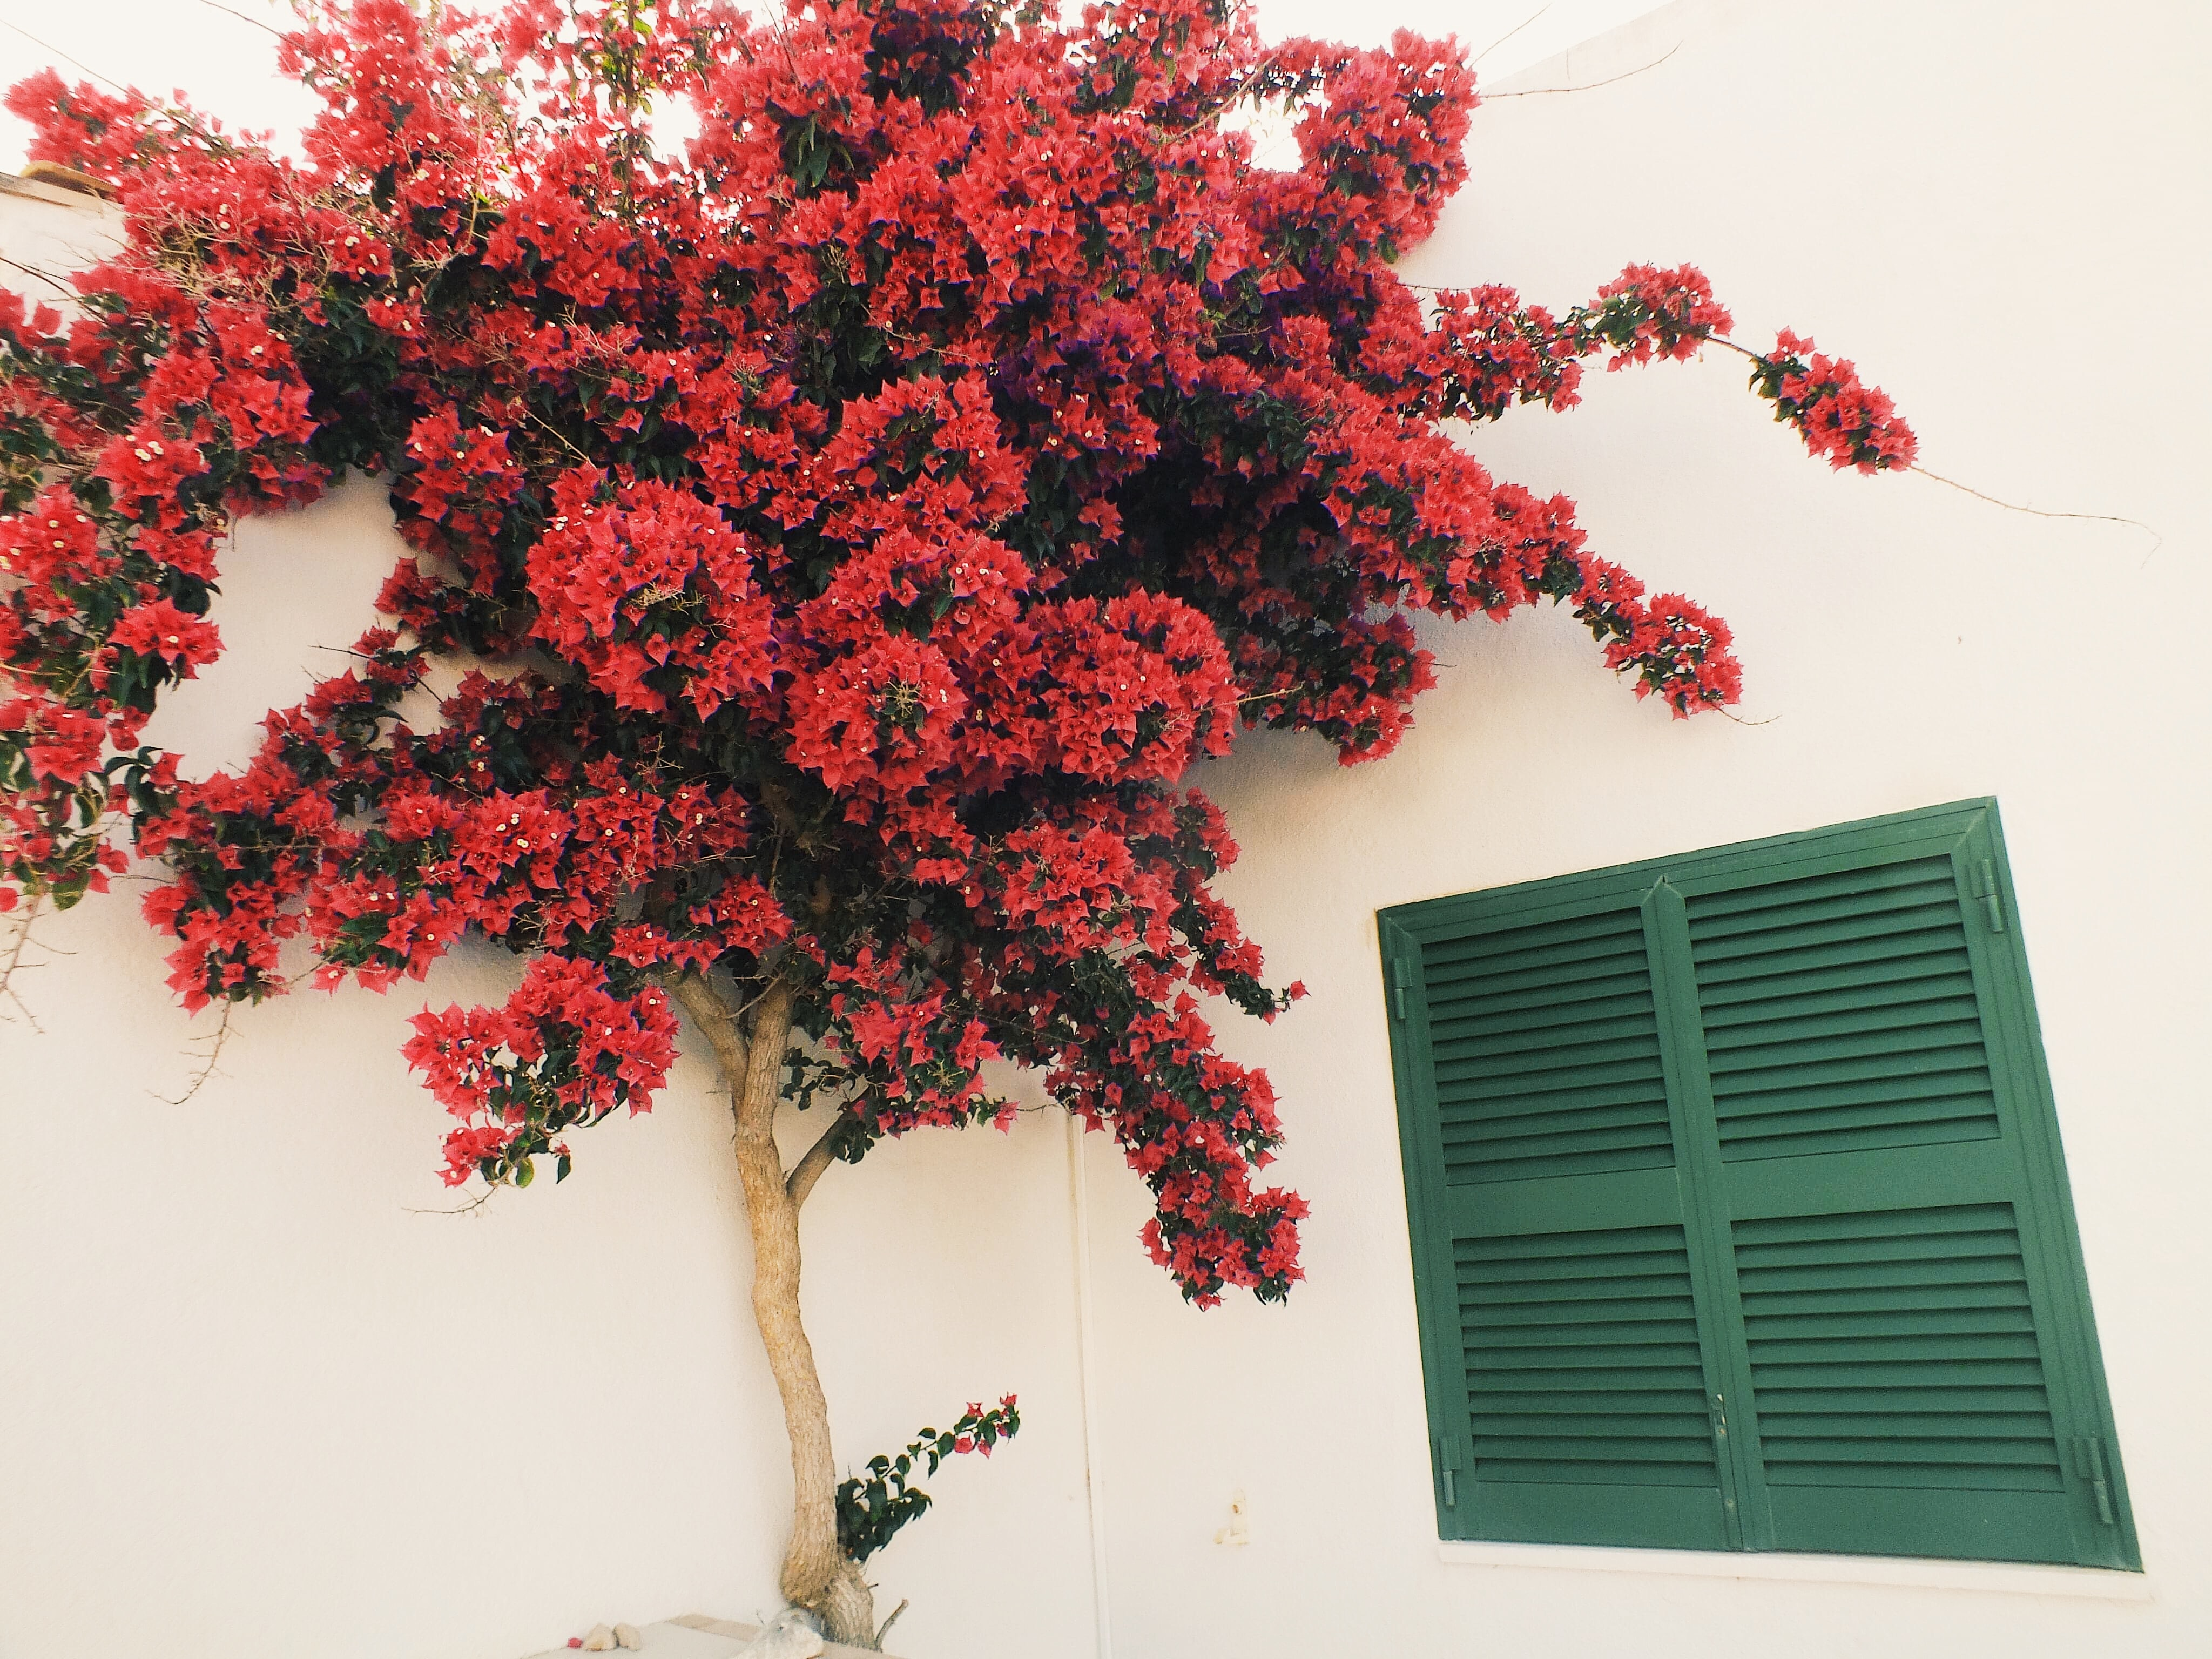 red tree beside white wall during daytime